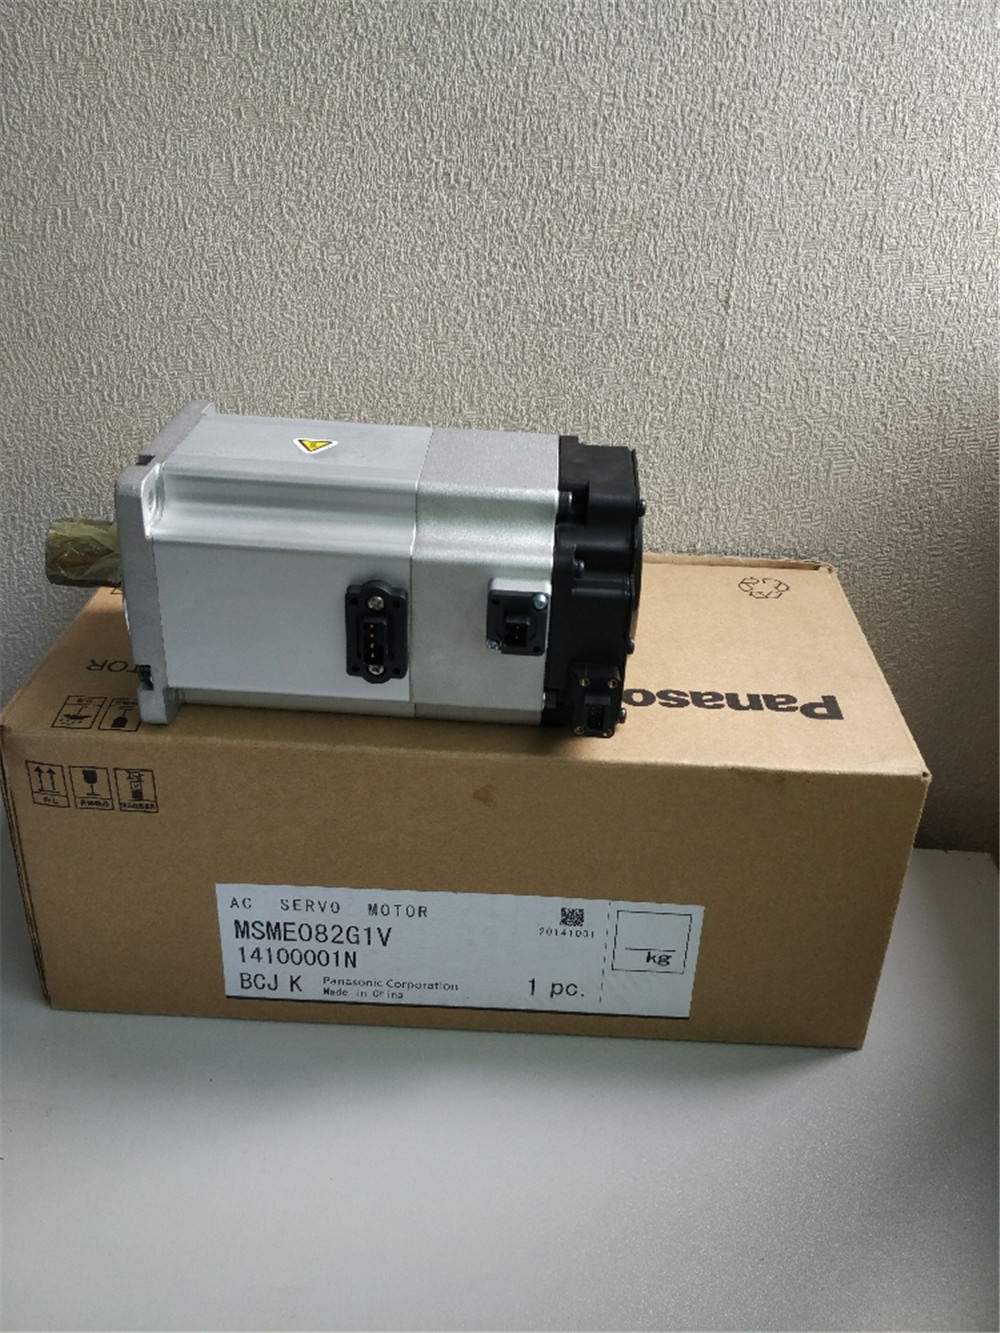 100% NEW PANASONIC AC servo motor MSME082G1V in box